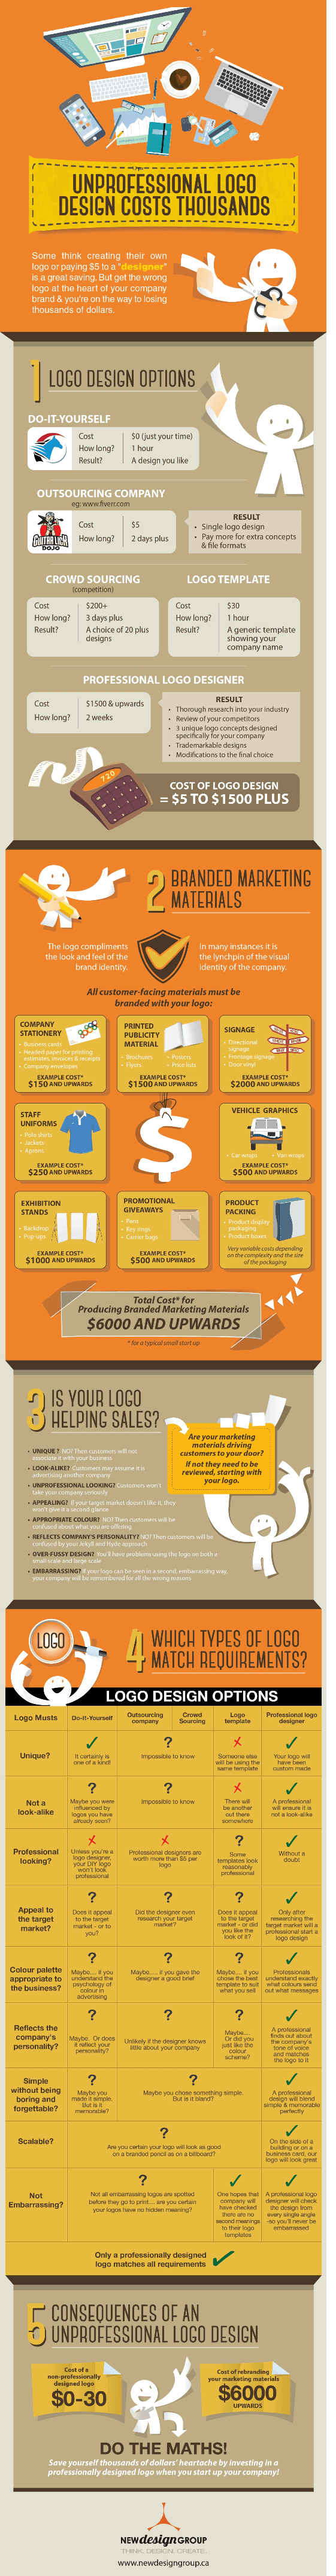 Logo Design Cost - Unprofessional logo design costs thousands Infographics